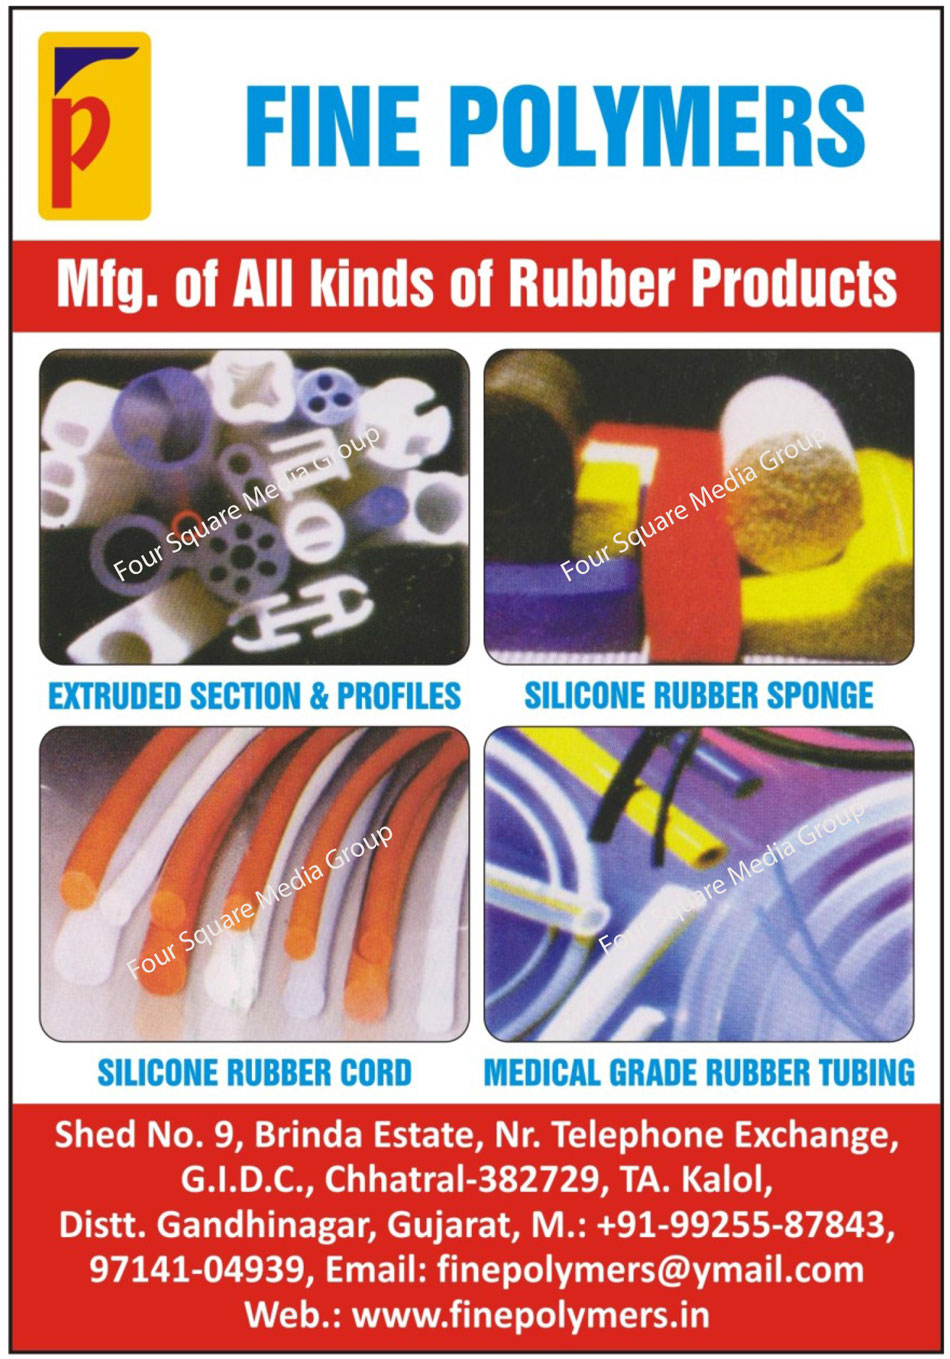 Rubber Products, Extruded Section, Extruded Profiles, Silicone Rubber Sponge, Silicone Rubber Cords, Medical Grade Rubber Tubing